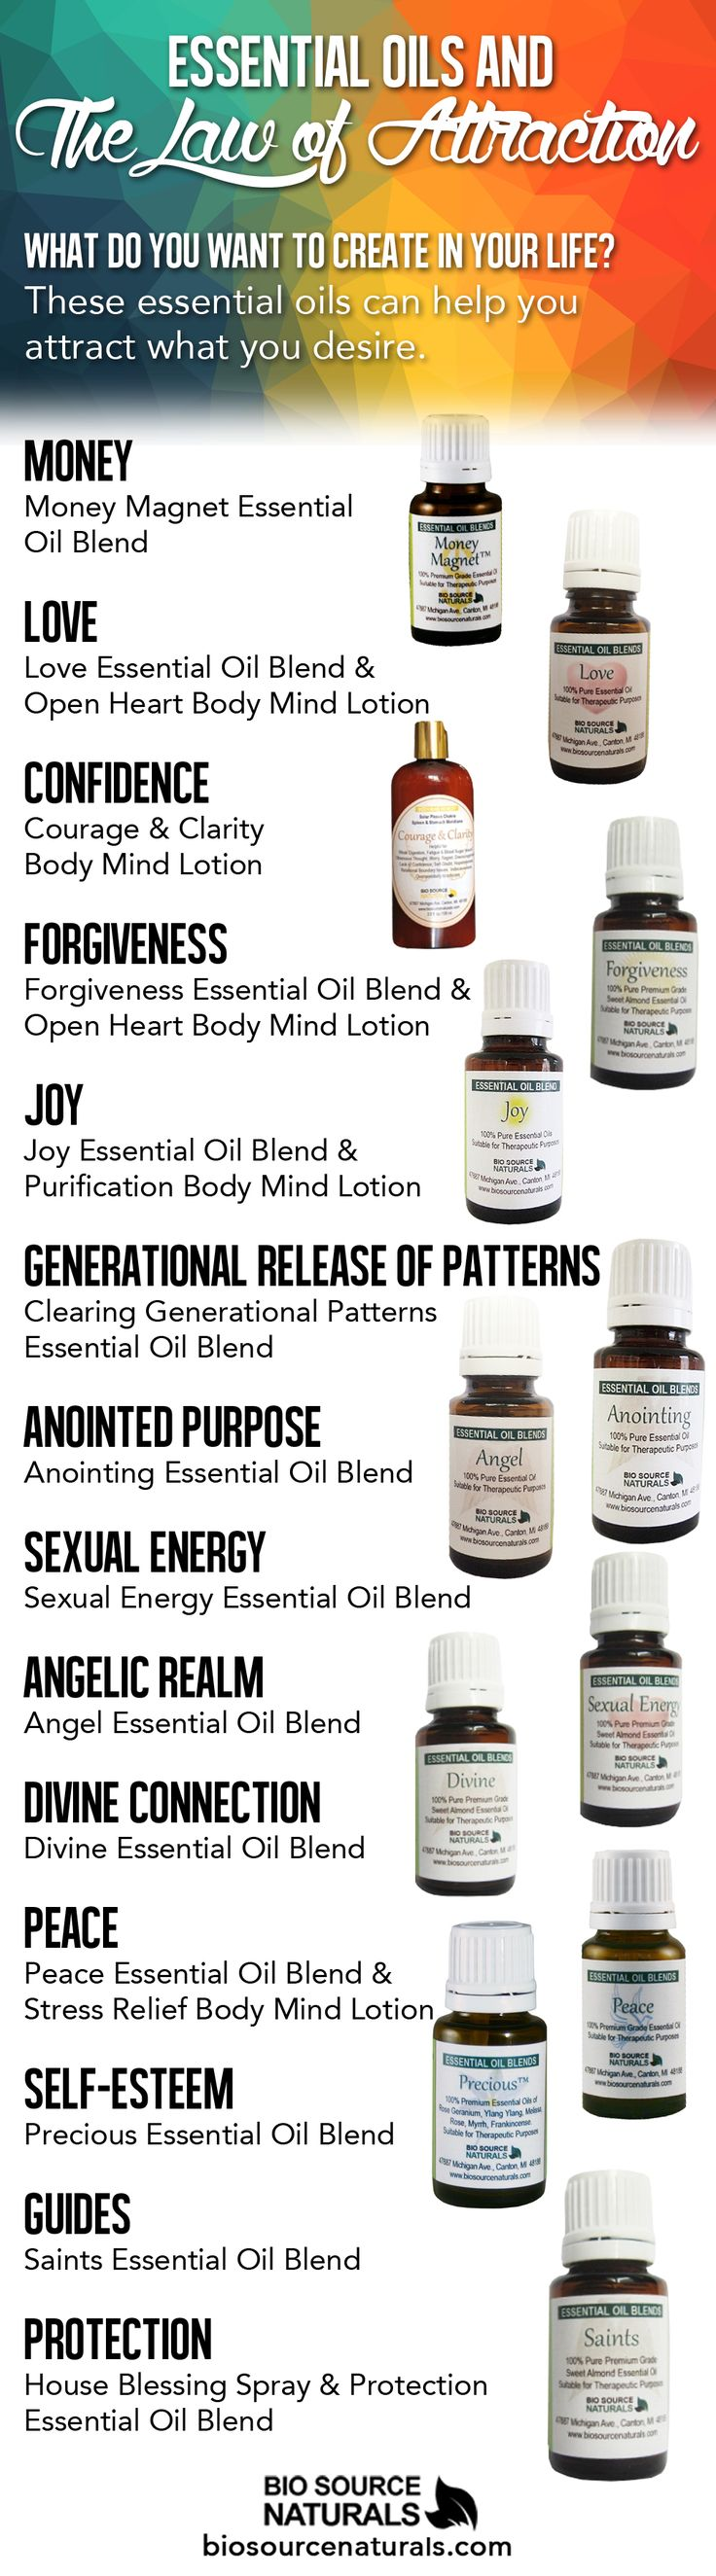 What do you want to create in your life? These essential oils pair perfectly with the law of attraction. Raise your vibration or frequency with the use of our blends. #aromatherapy